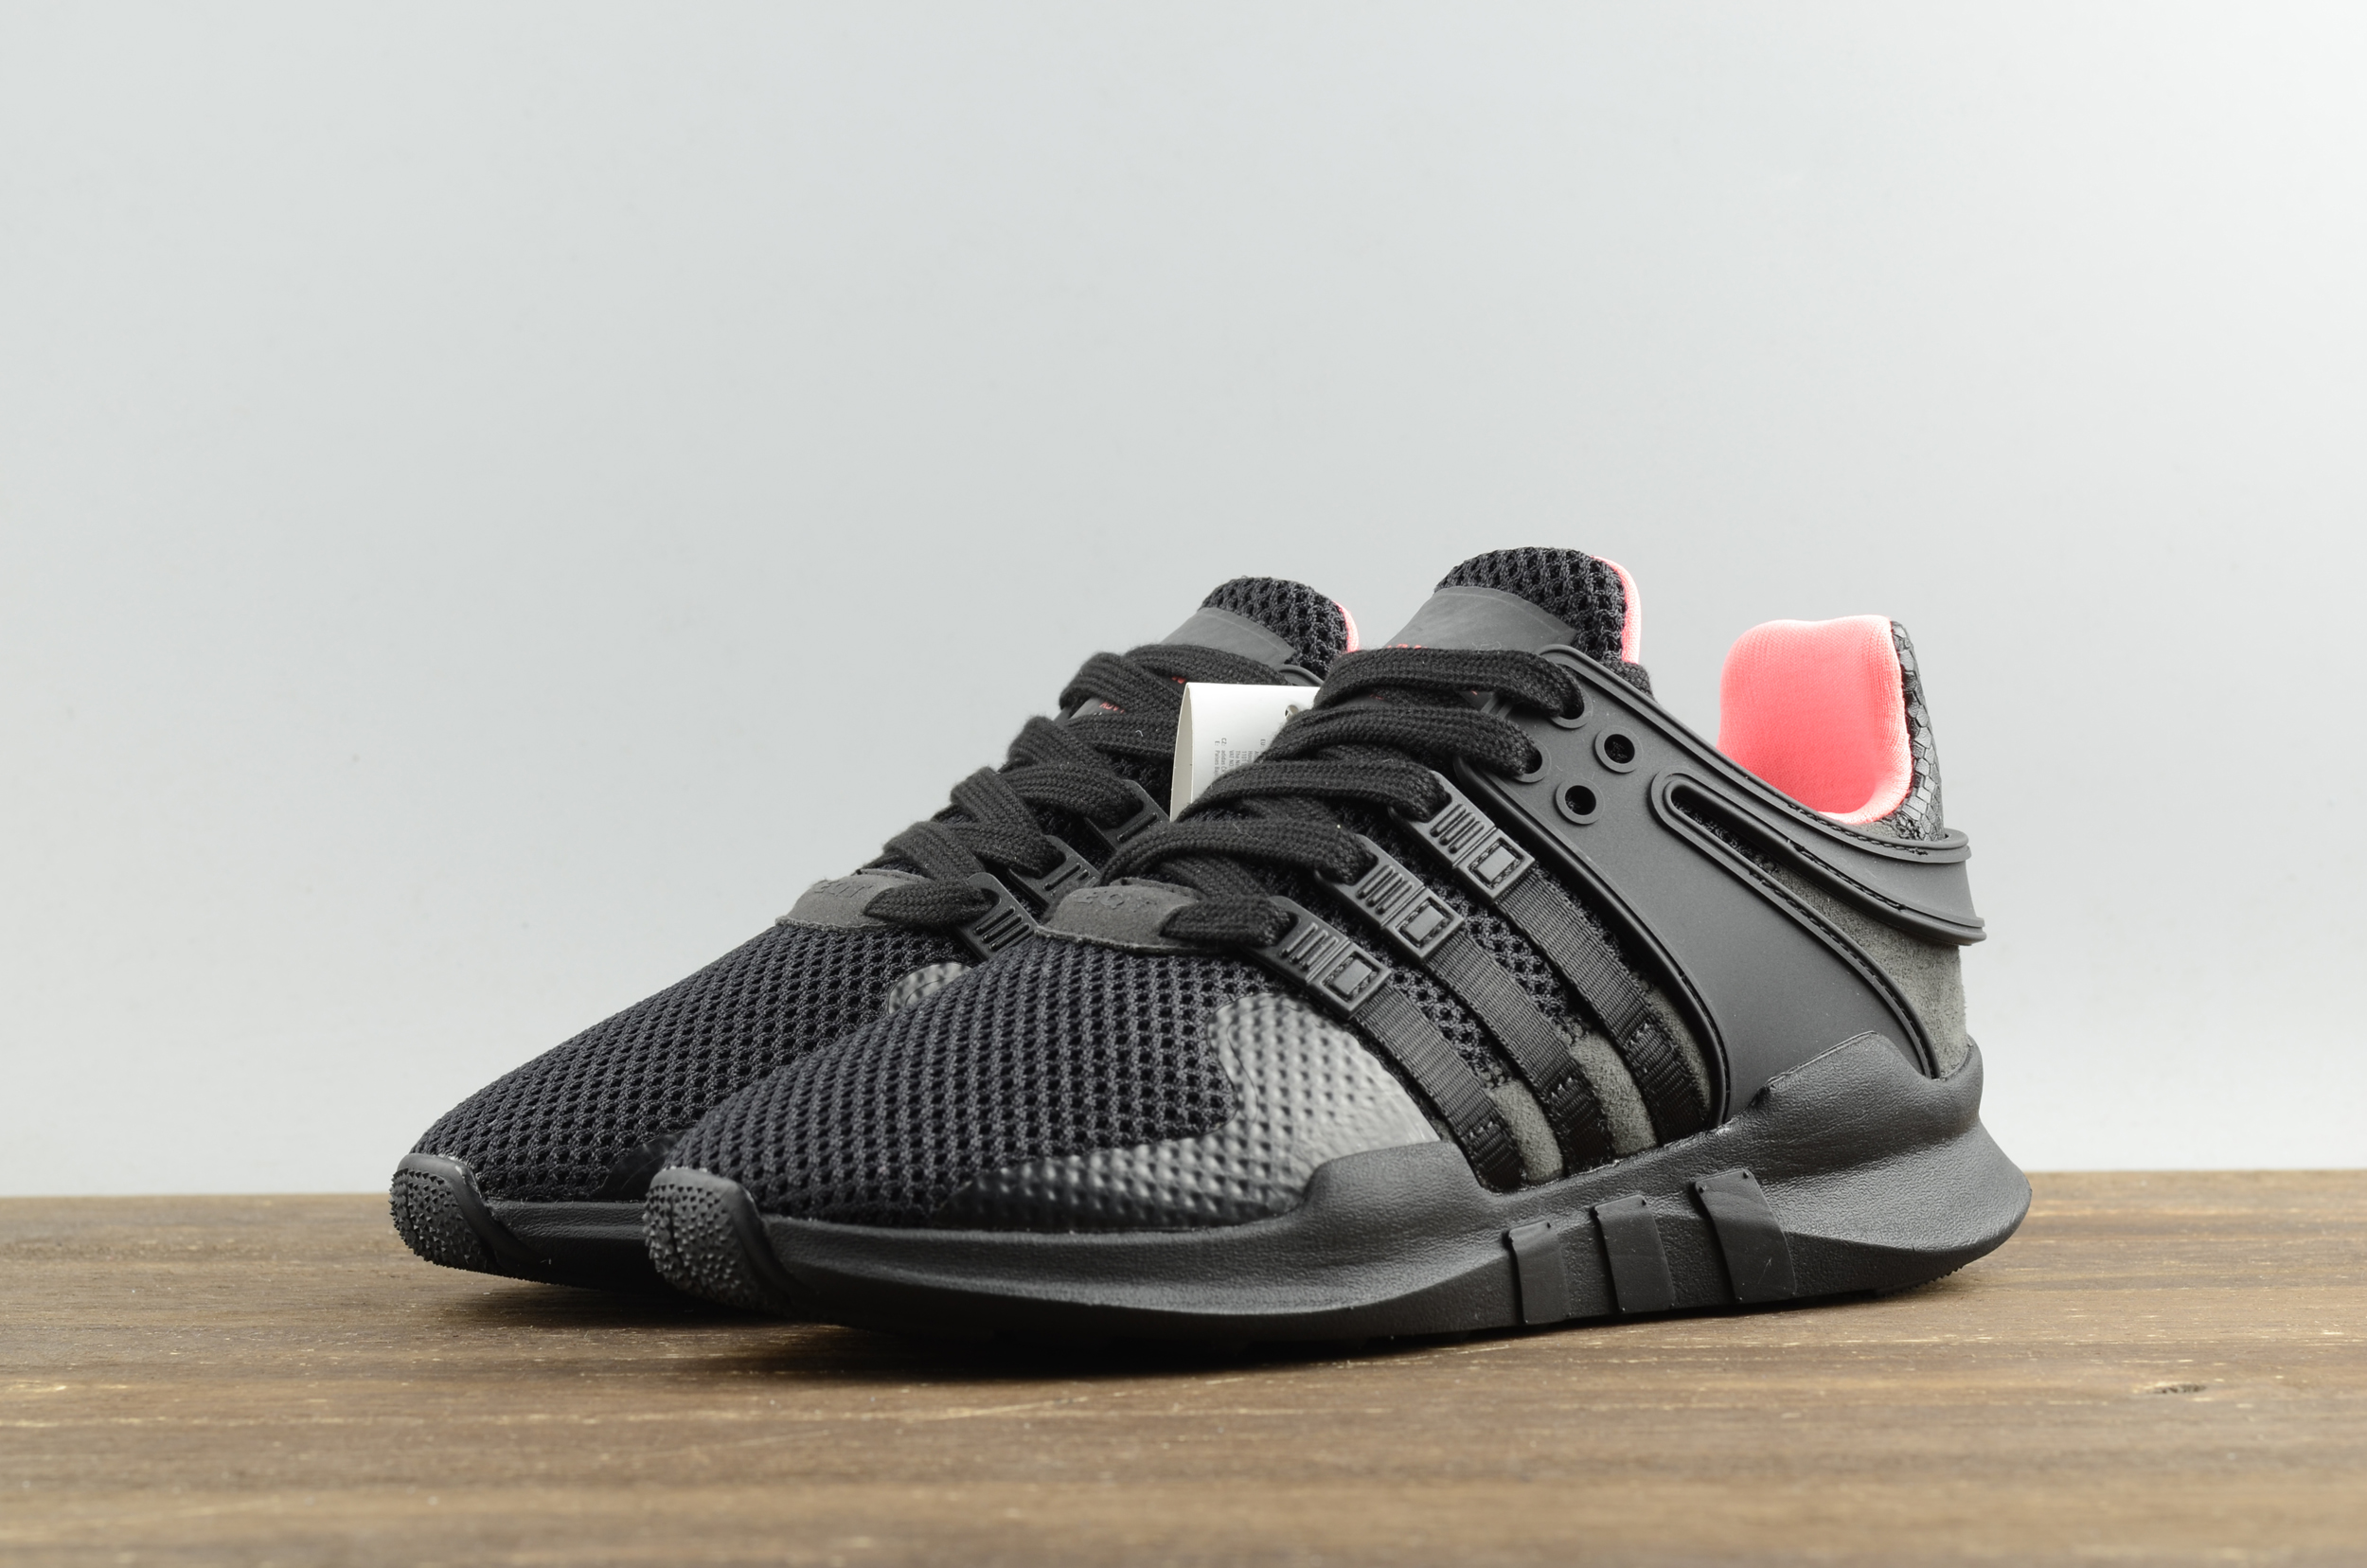 buy online 5b4ae 12d67 Adidas EQT support adv pk 93 black pink running shoes on Sto